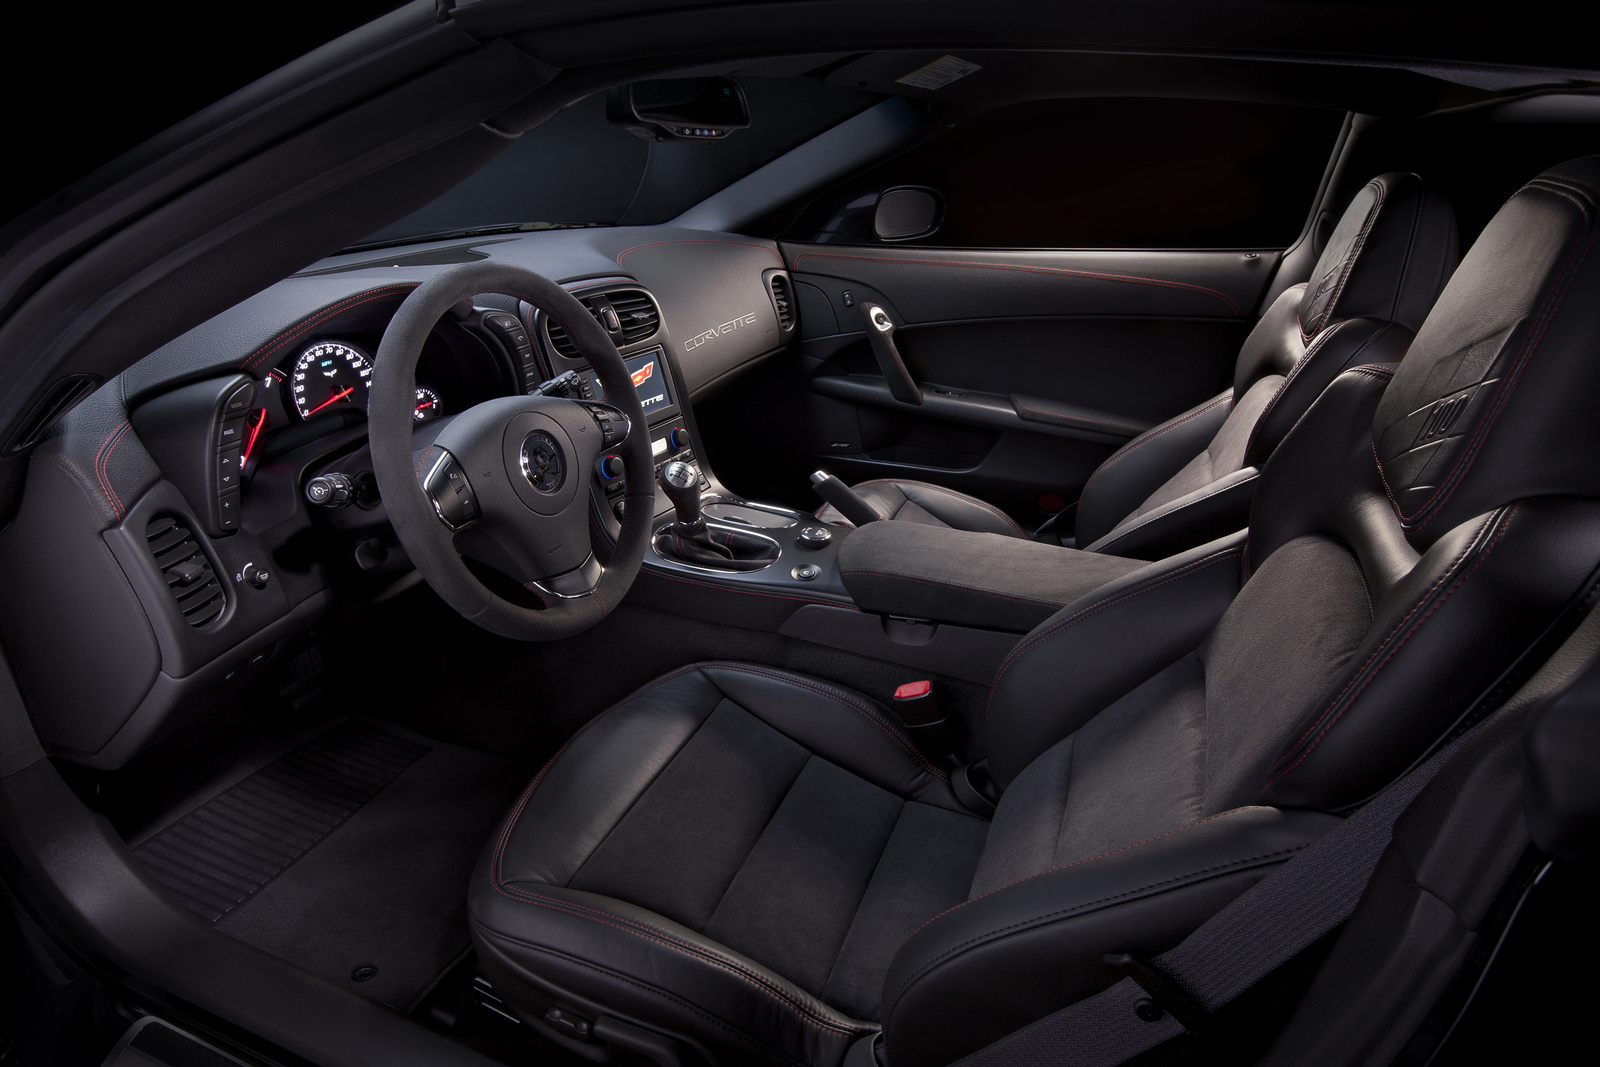 2012 Chevrolet Corvette, Interior View (General Motors Corporation), manufacturer, interior